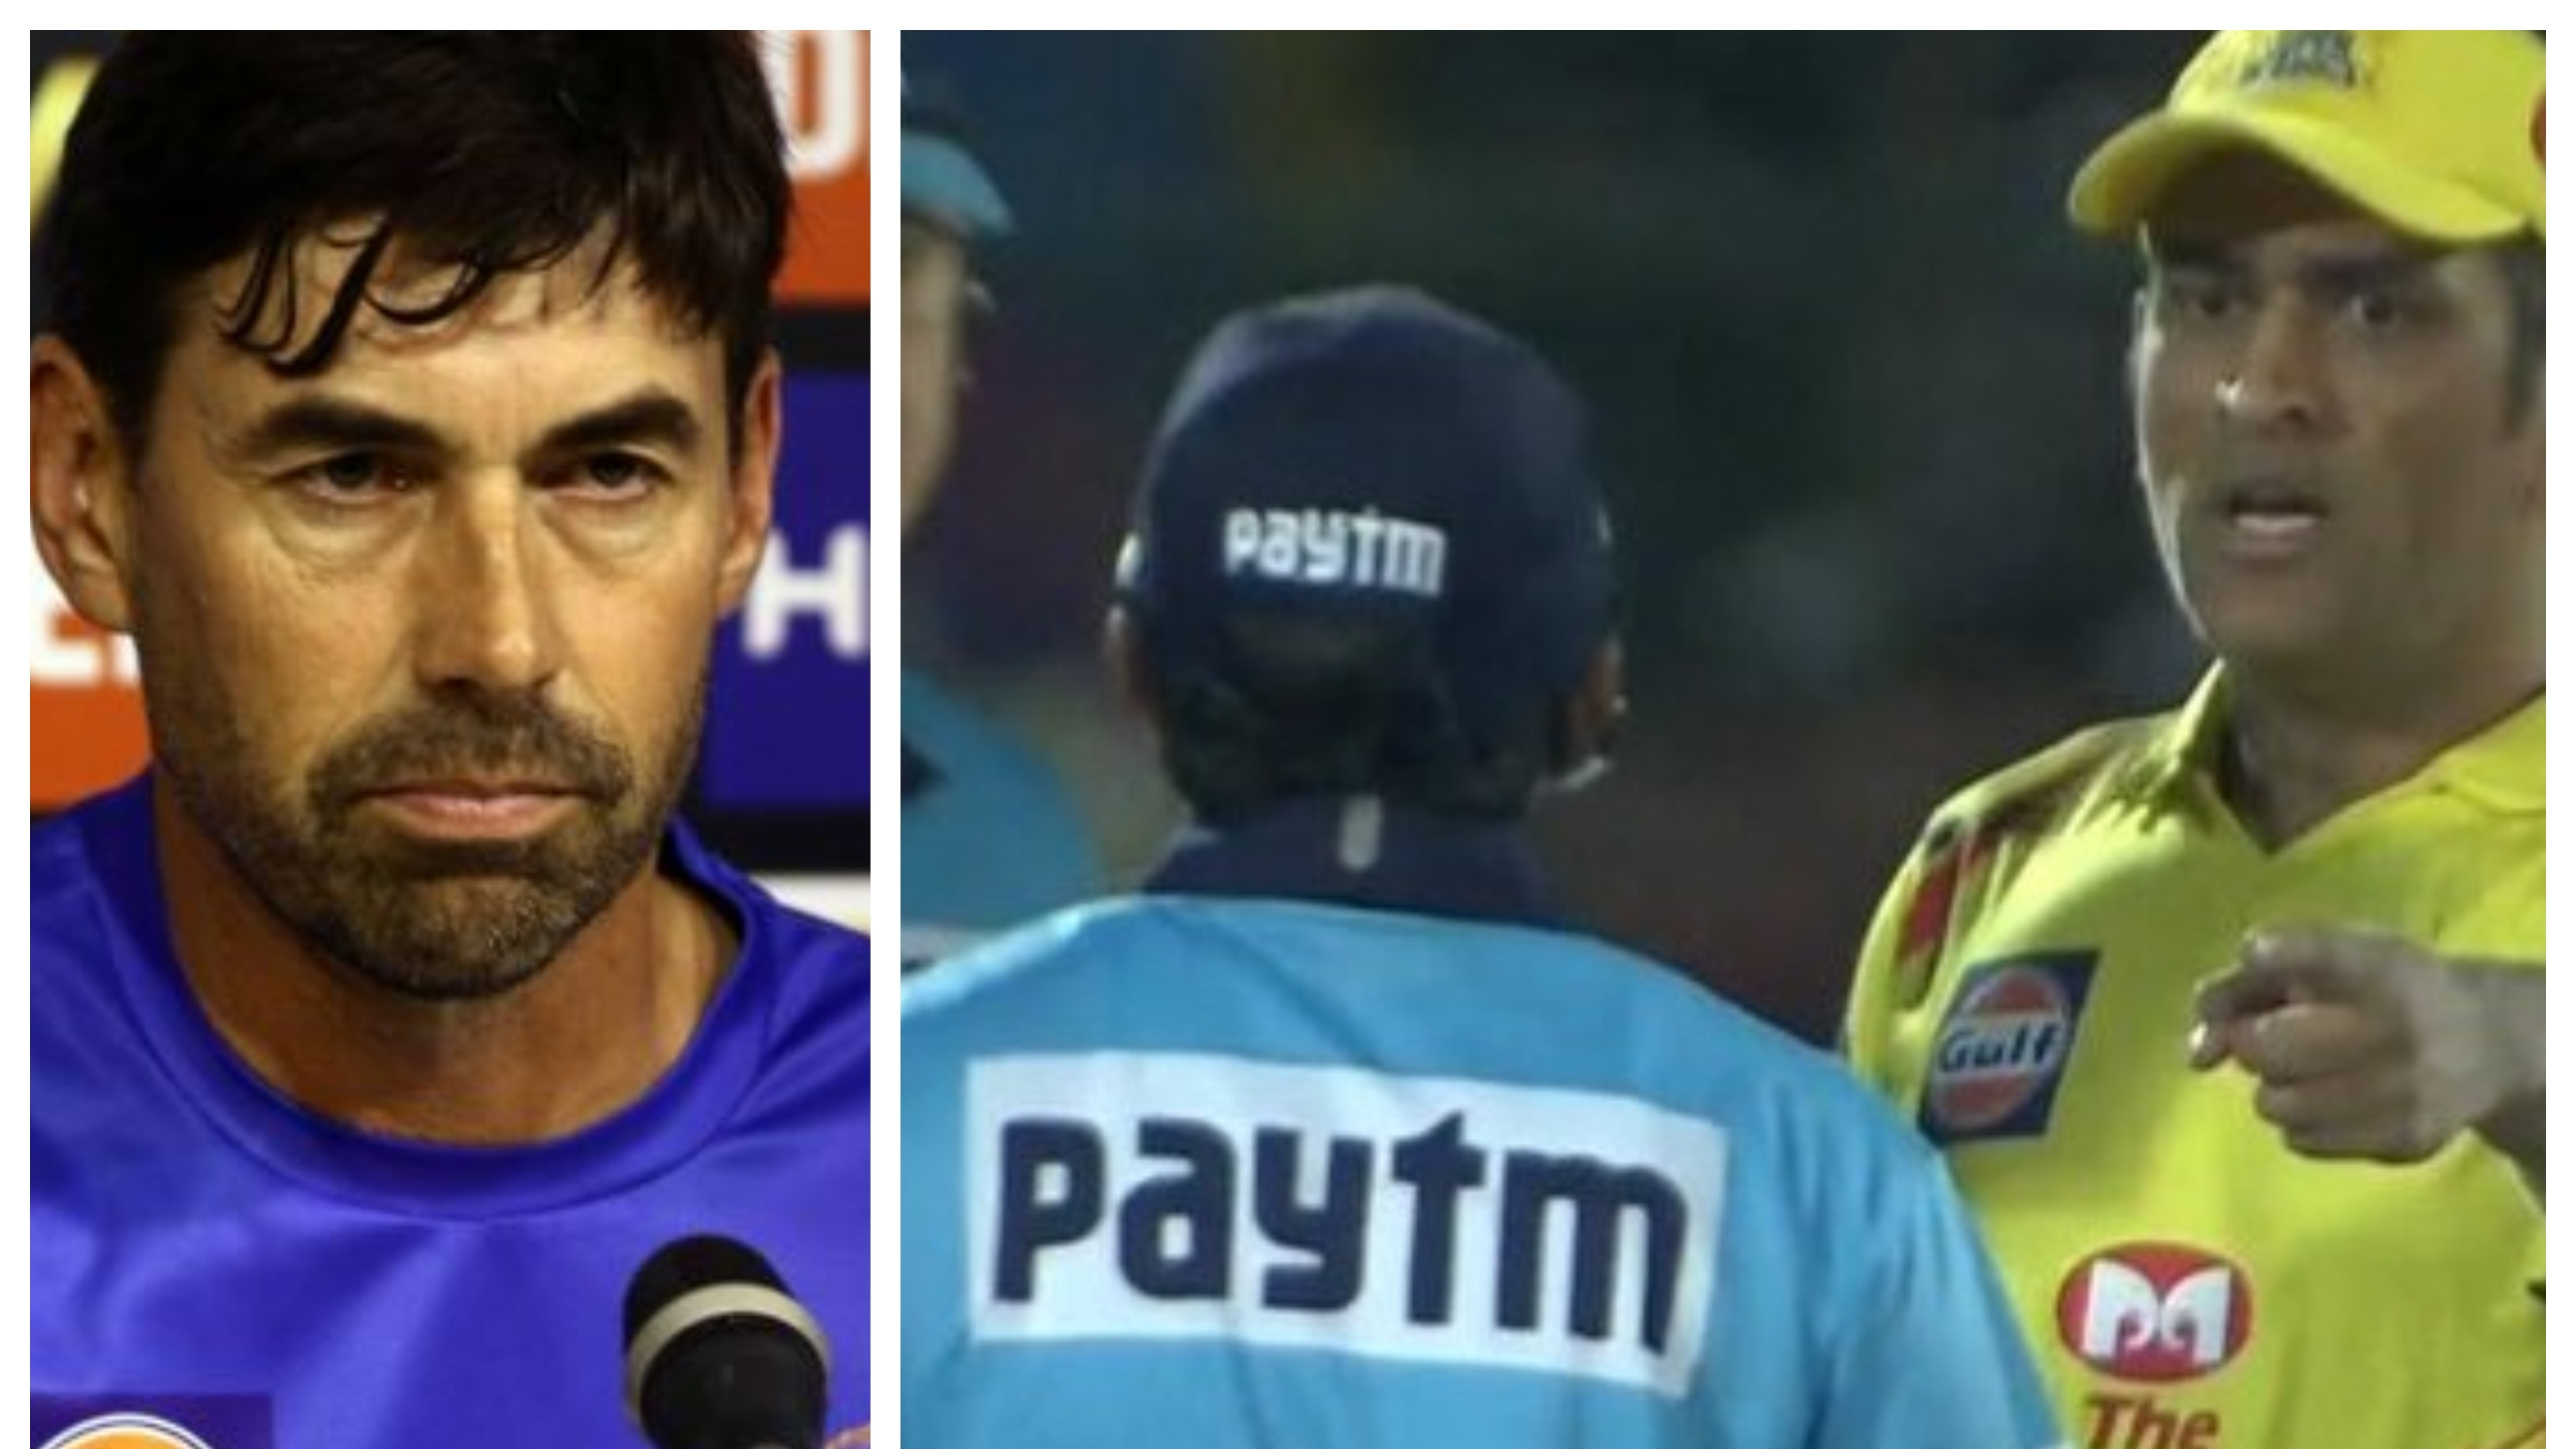 IPL 2019: MS Dhoni got fired up by the way no-ball decision was handled, says Stephen Fleming